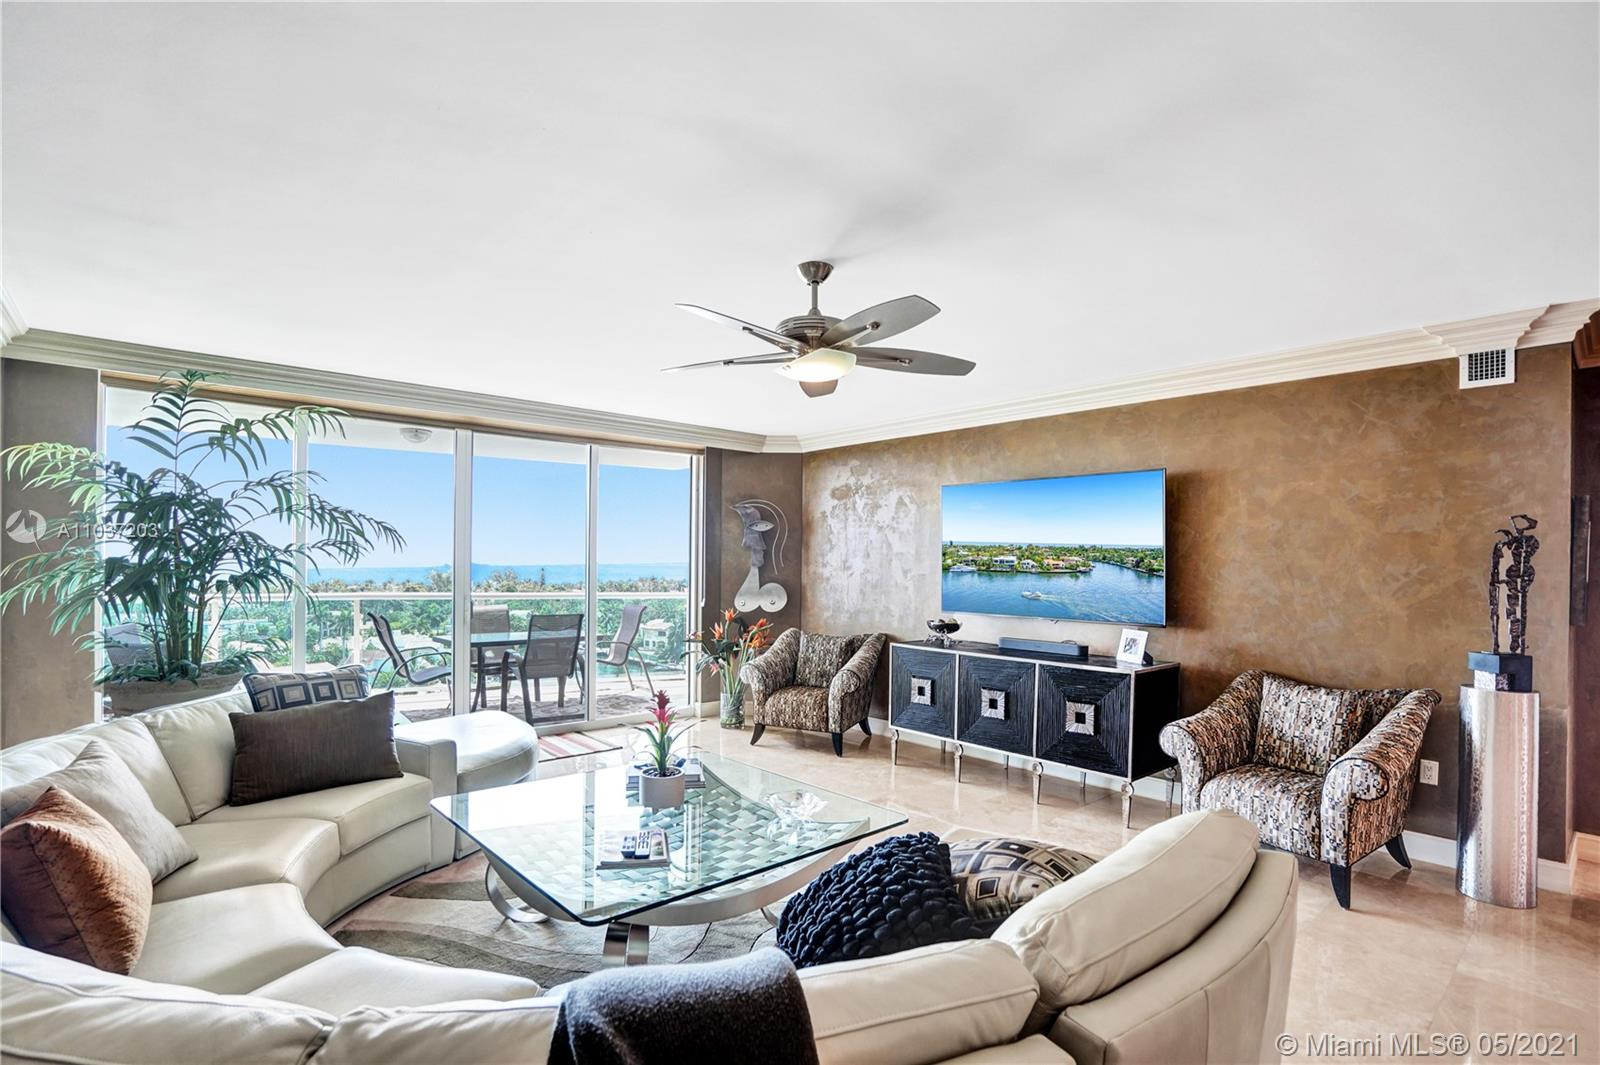 Photo of 20201 Country Club Dr #1006, Aventura, Florida, 33180 - Beautiful double doors open to the unit, from a private elevator.